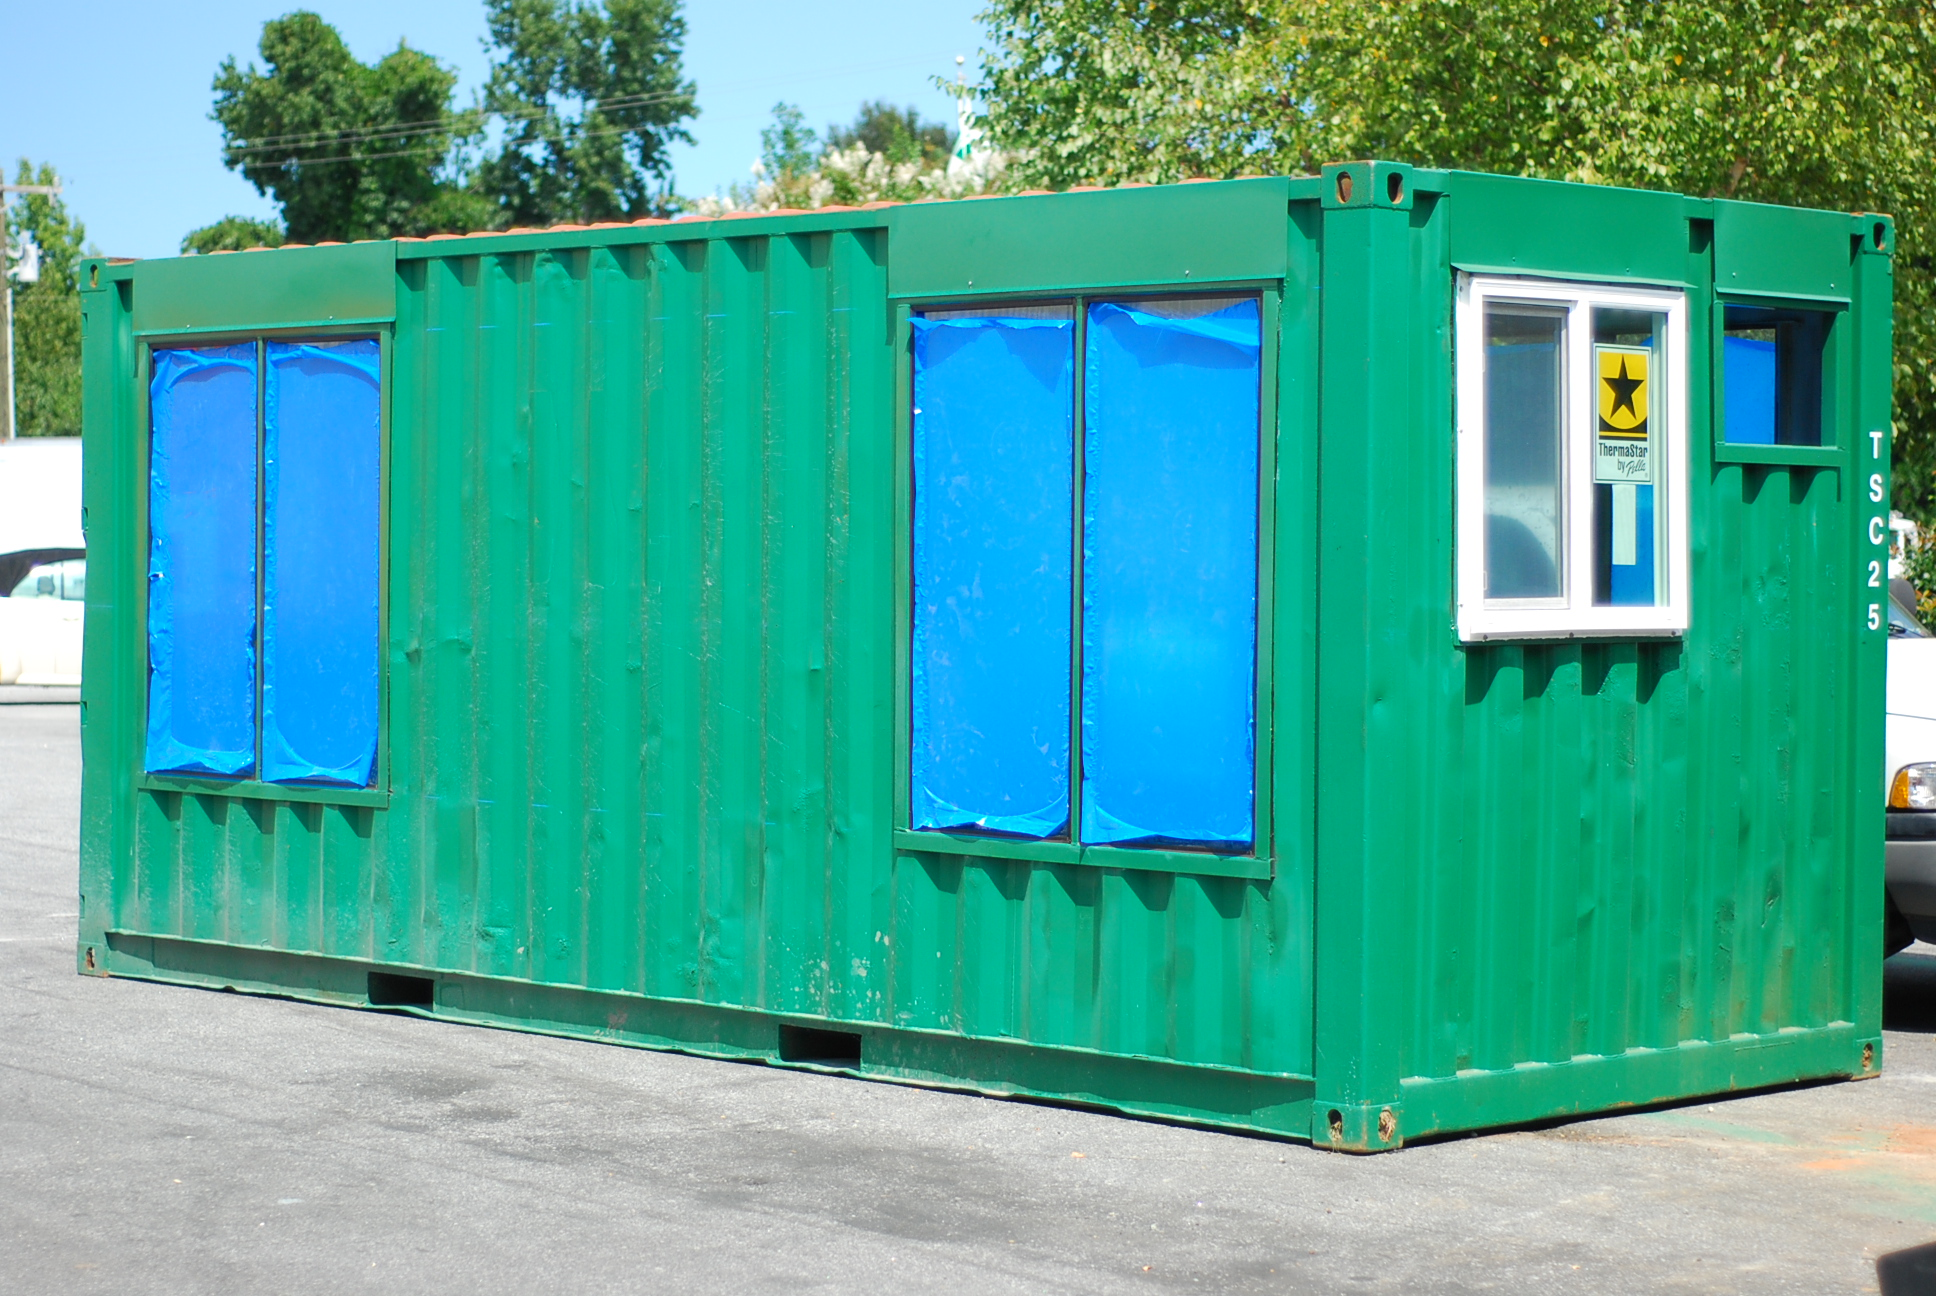 Green custom container with windows